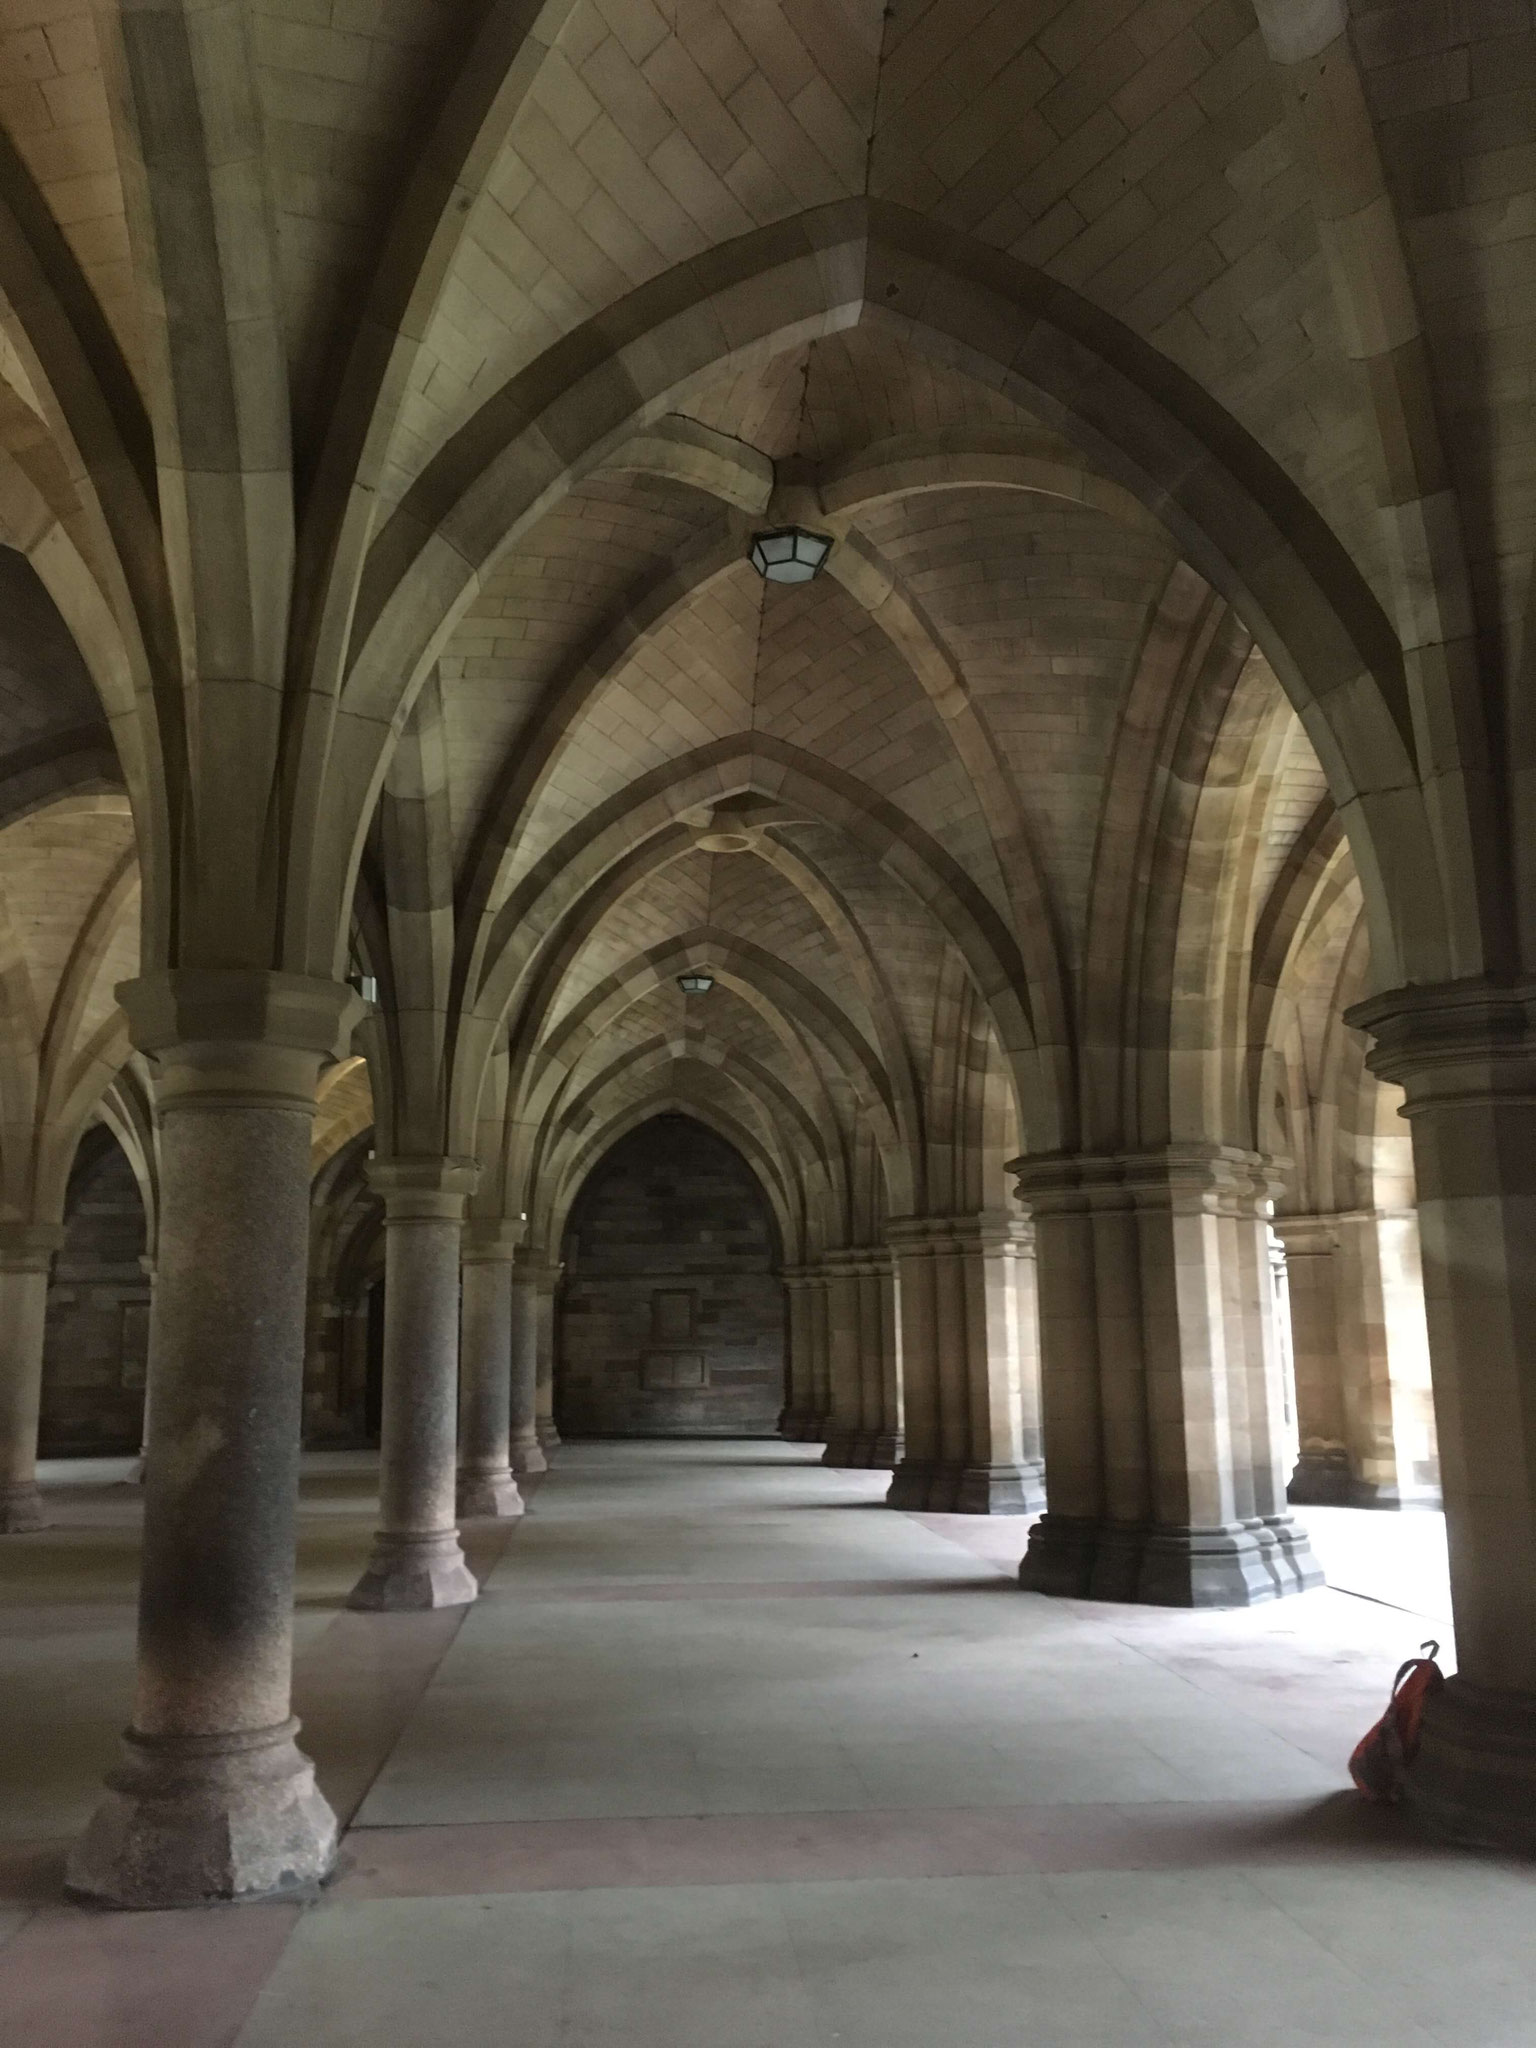 The Cloisters are one of the most popular photo spots of the University of Glasgow